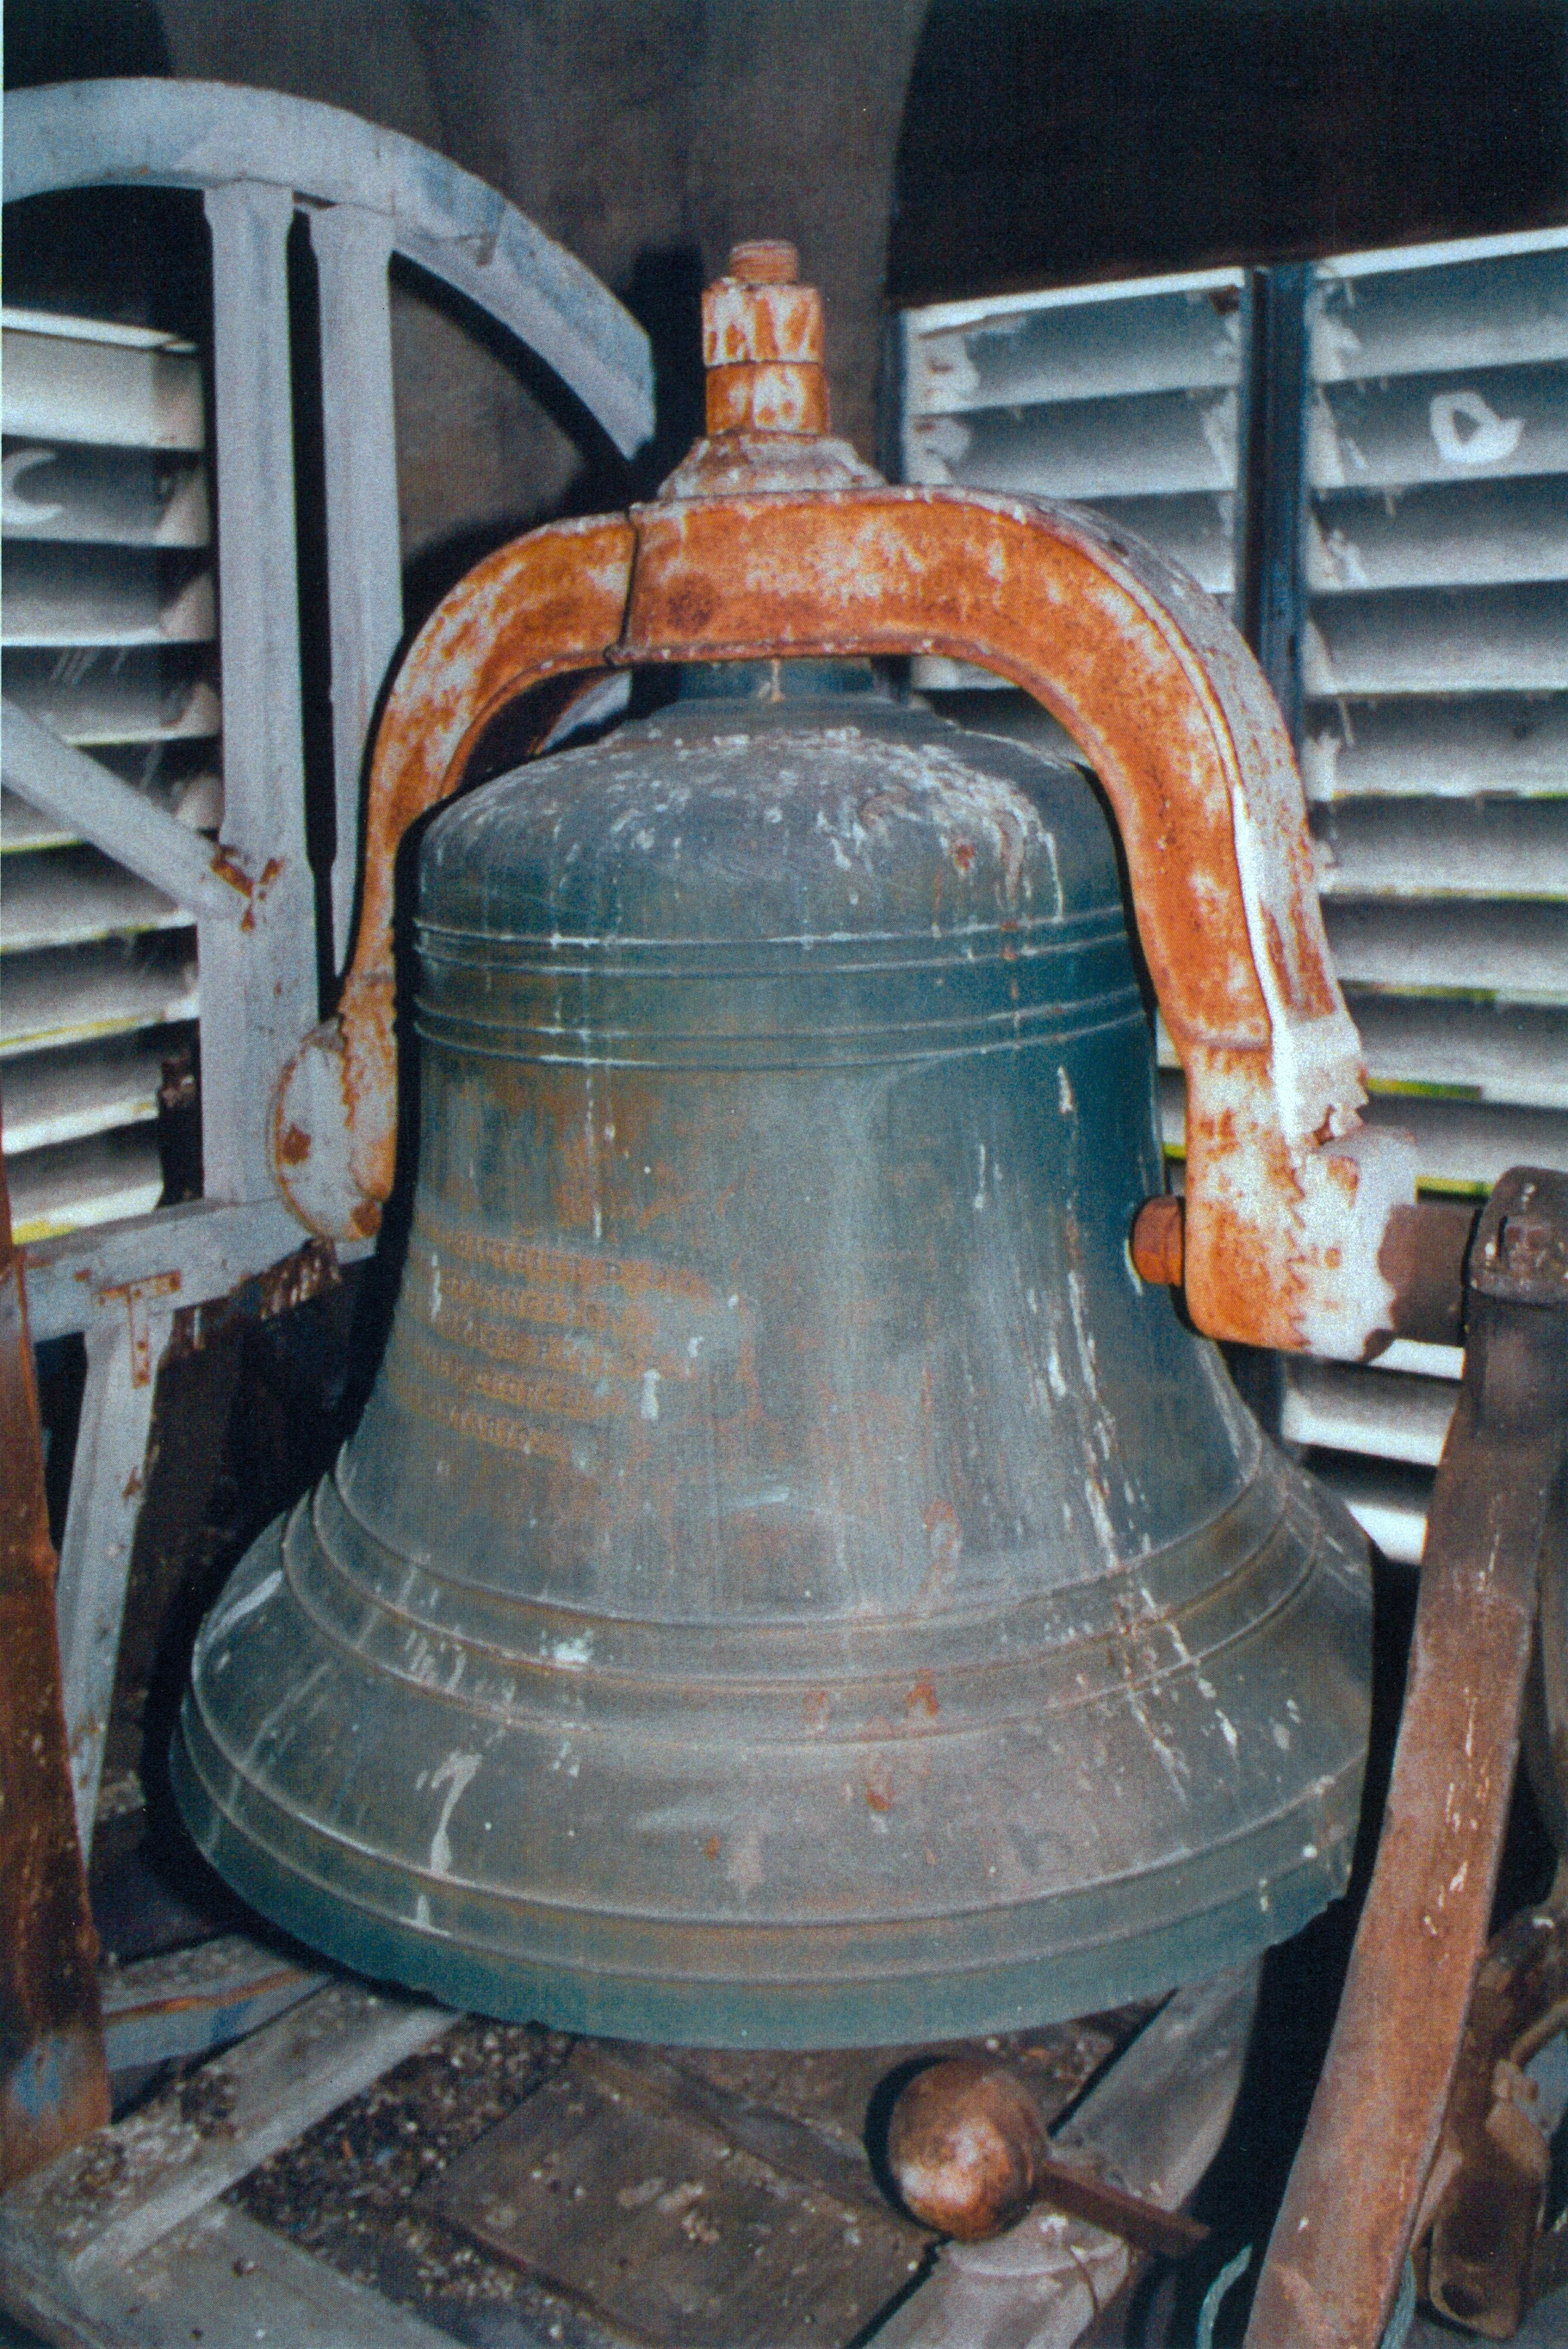 C lick here to read about the McShane Bell Foundry that made the bell .